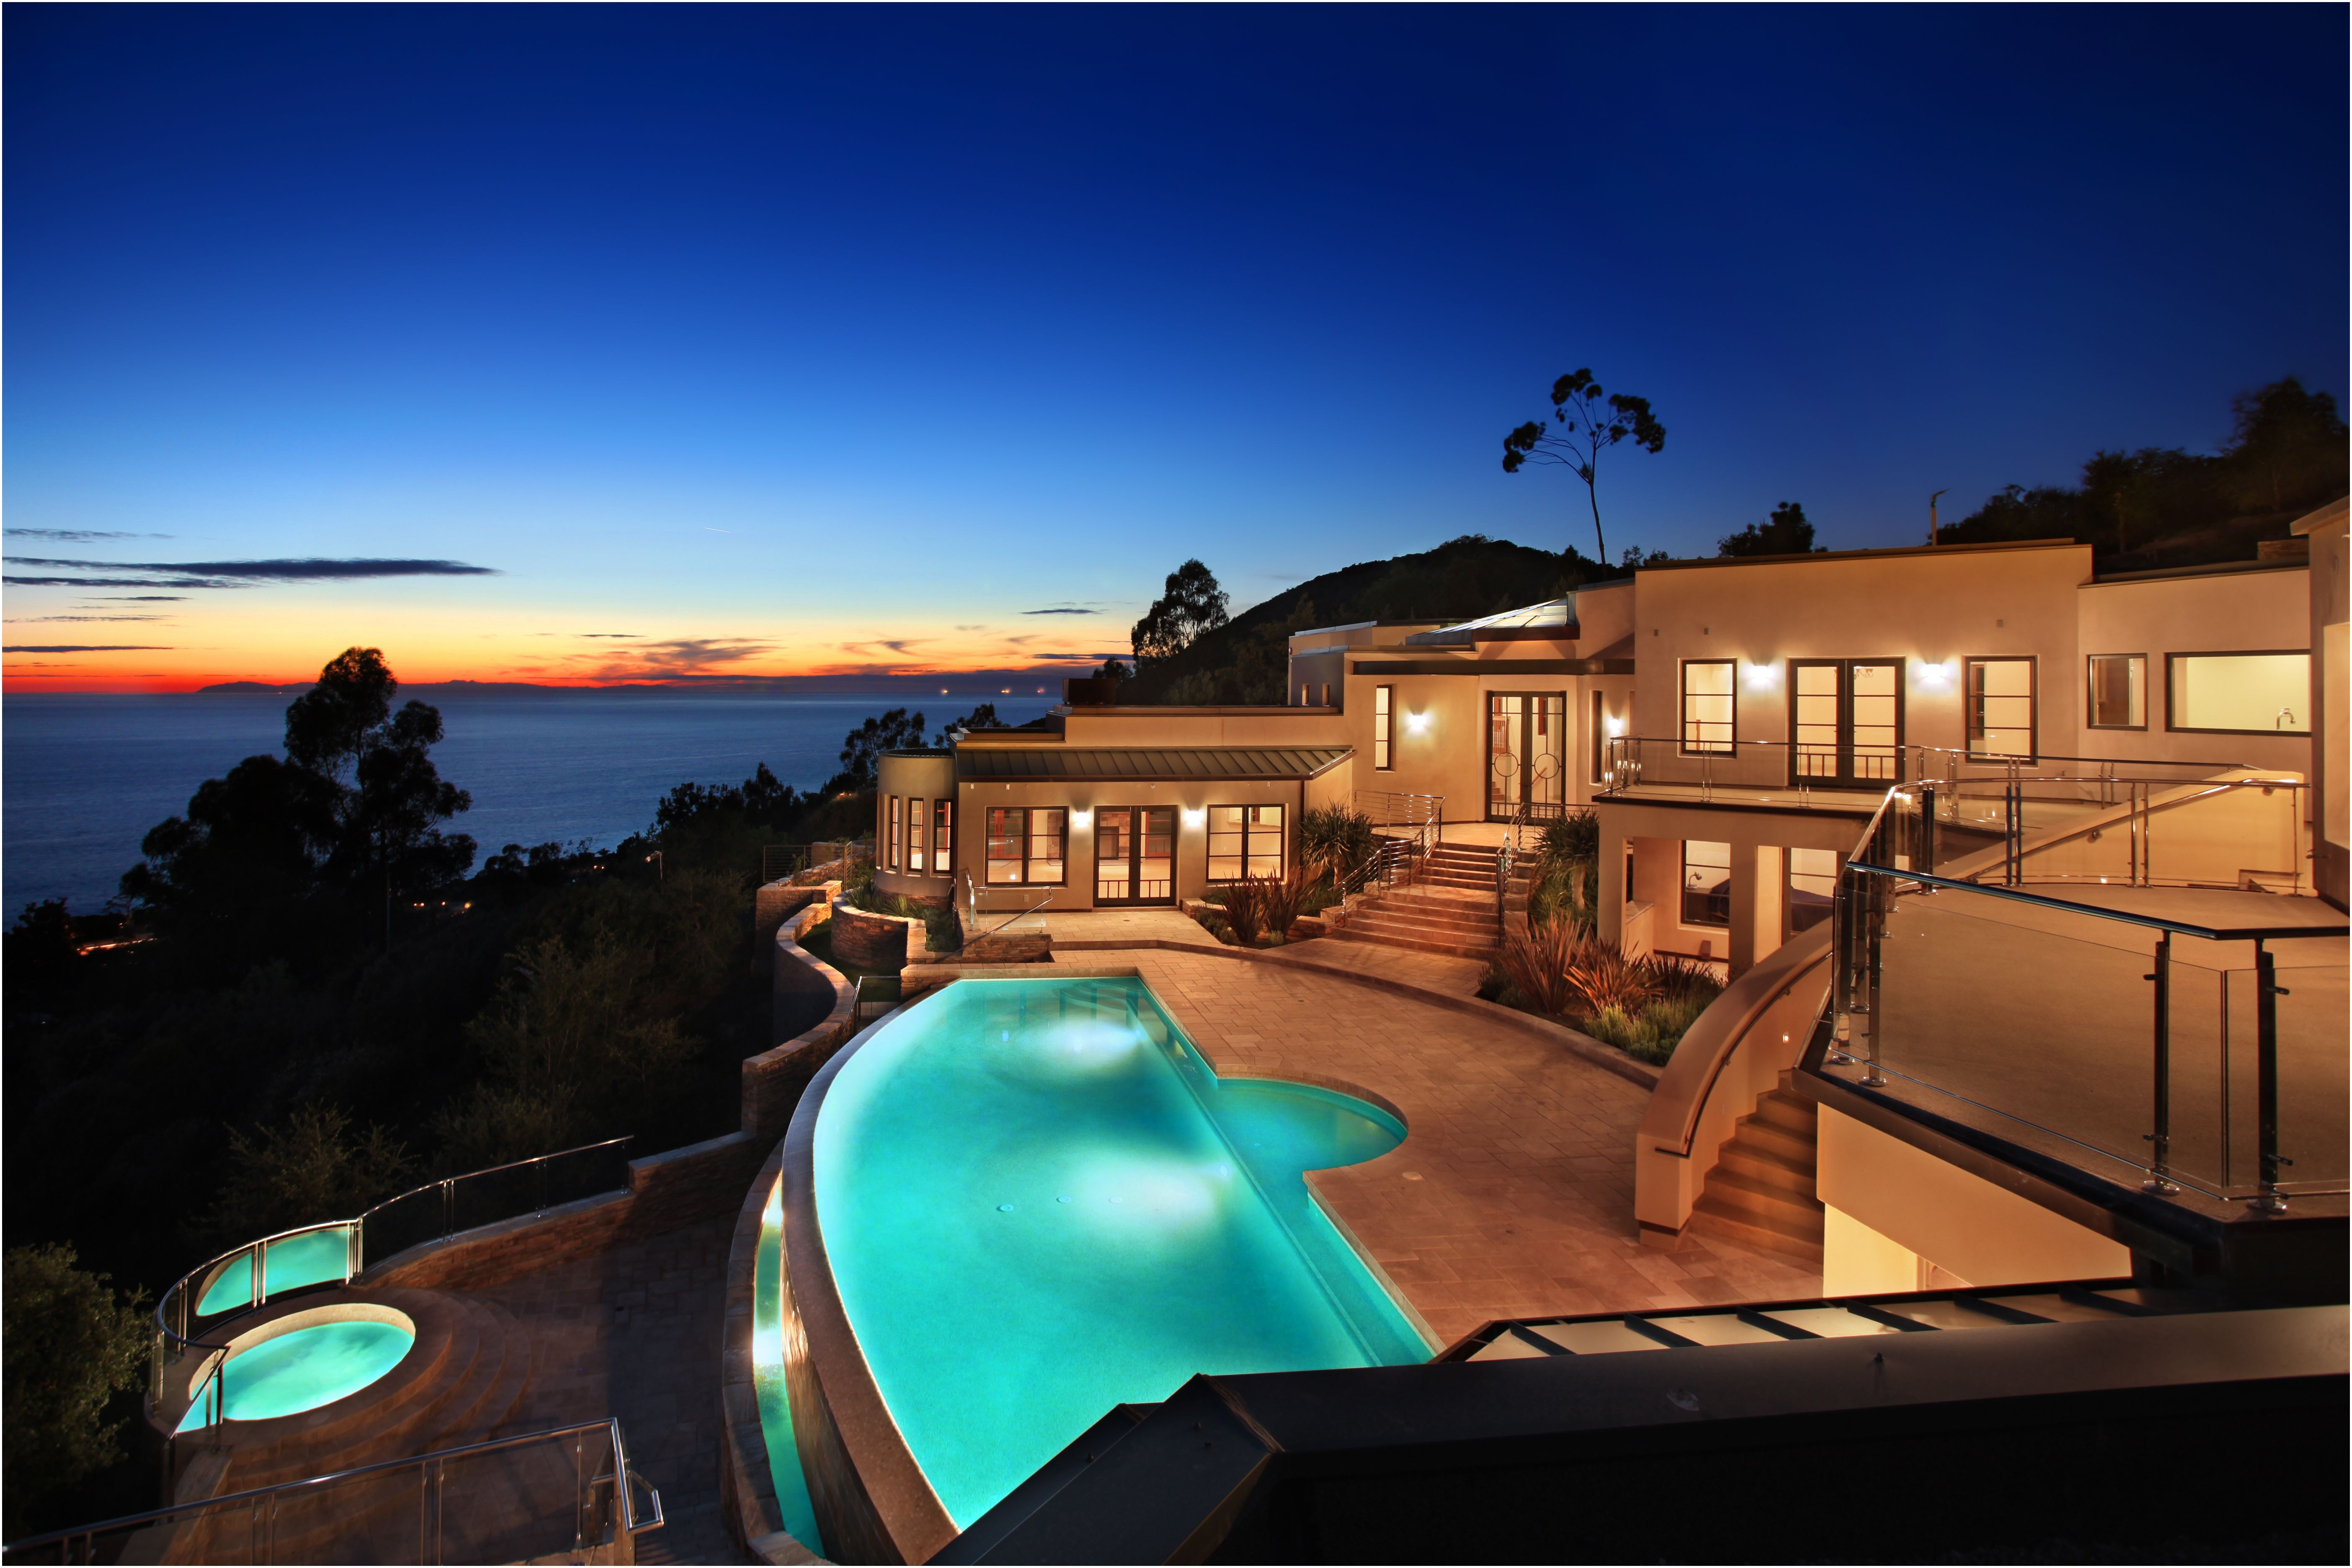 Beach Houses In Italy for Sale Fresh An Infinity Pool Overlooks Laguna Beach From A Very Private Hilltop